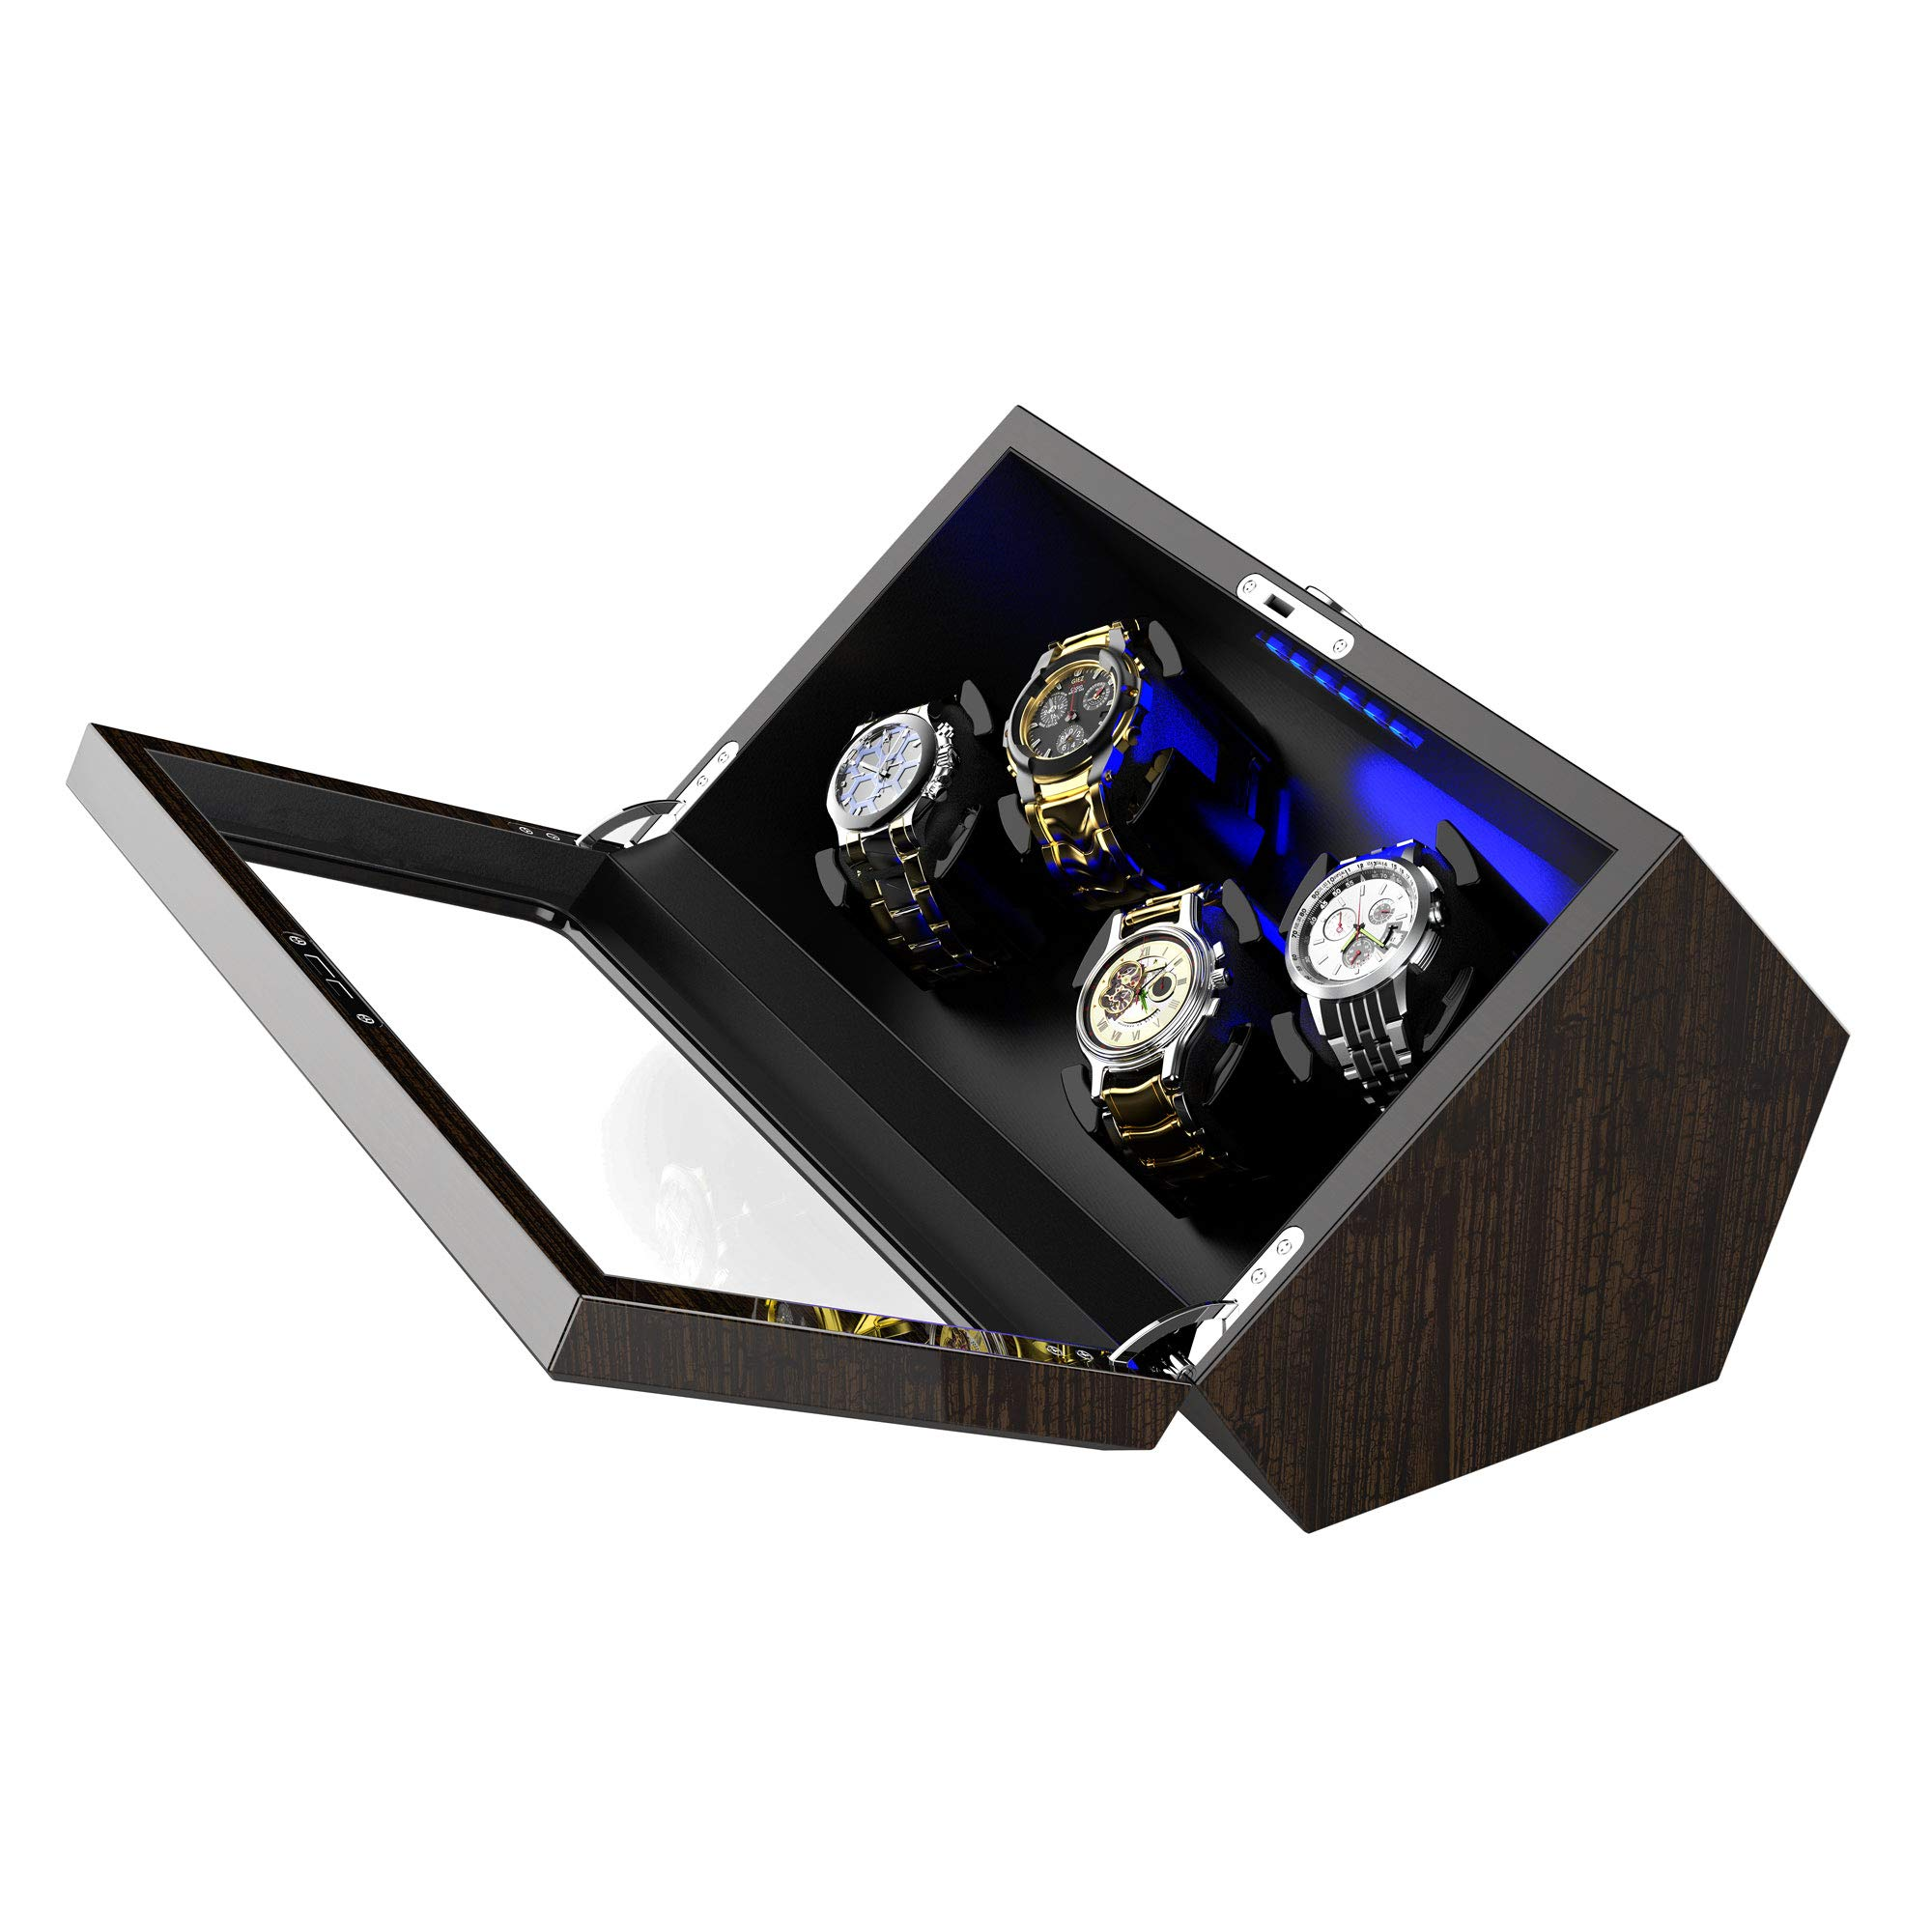 High End Watch Winder for 4 Rolex with Soft Flexible Watch Pillows, Blue Led Light, Open and Shut Down Featured, Pine Bark Pattern,Extra Over Size Watch Pillows Included